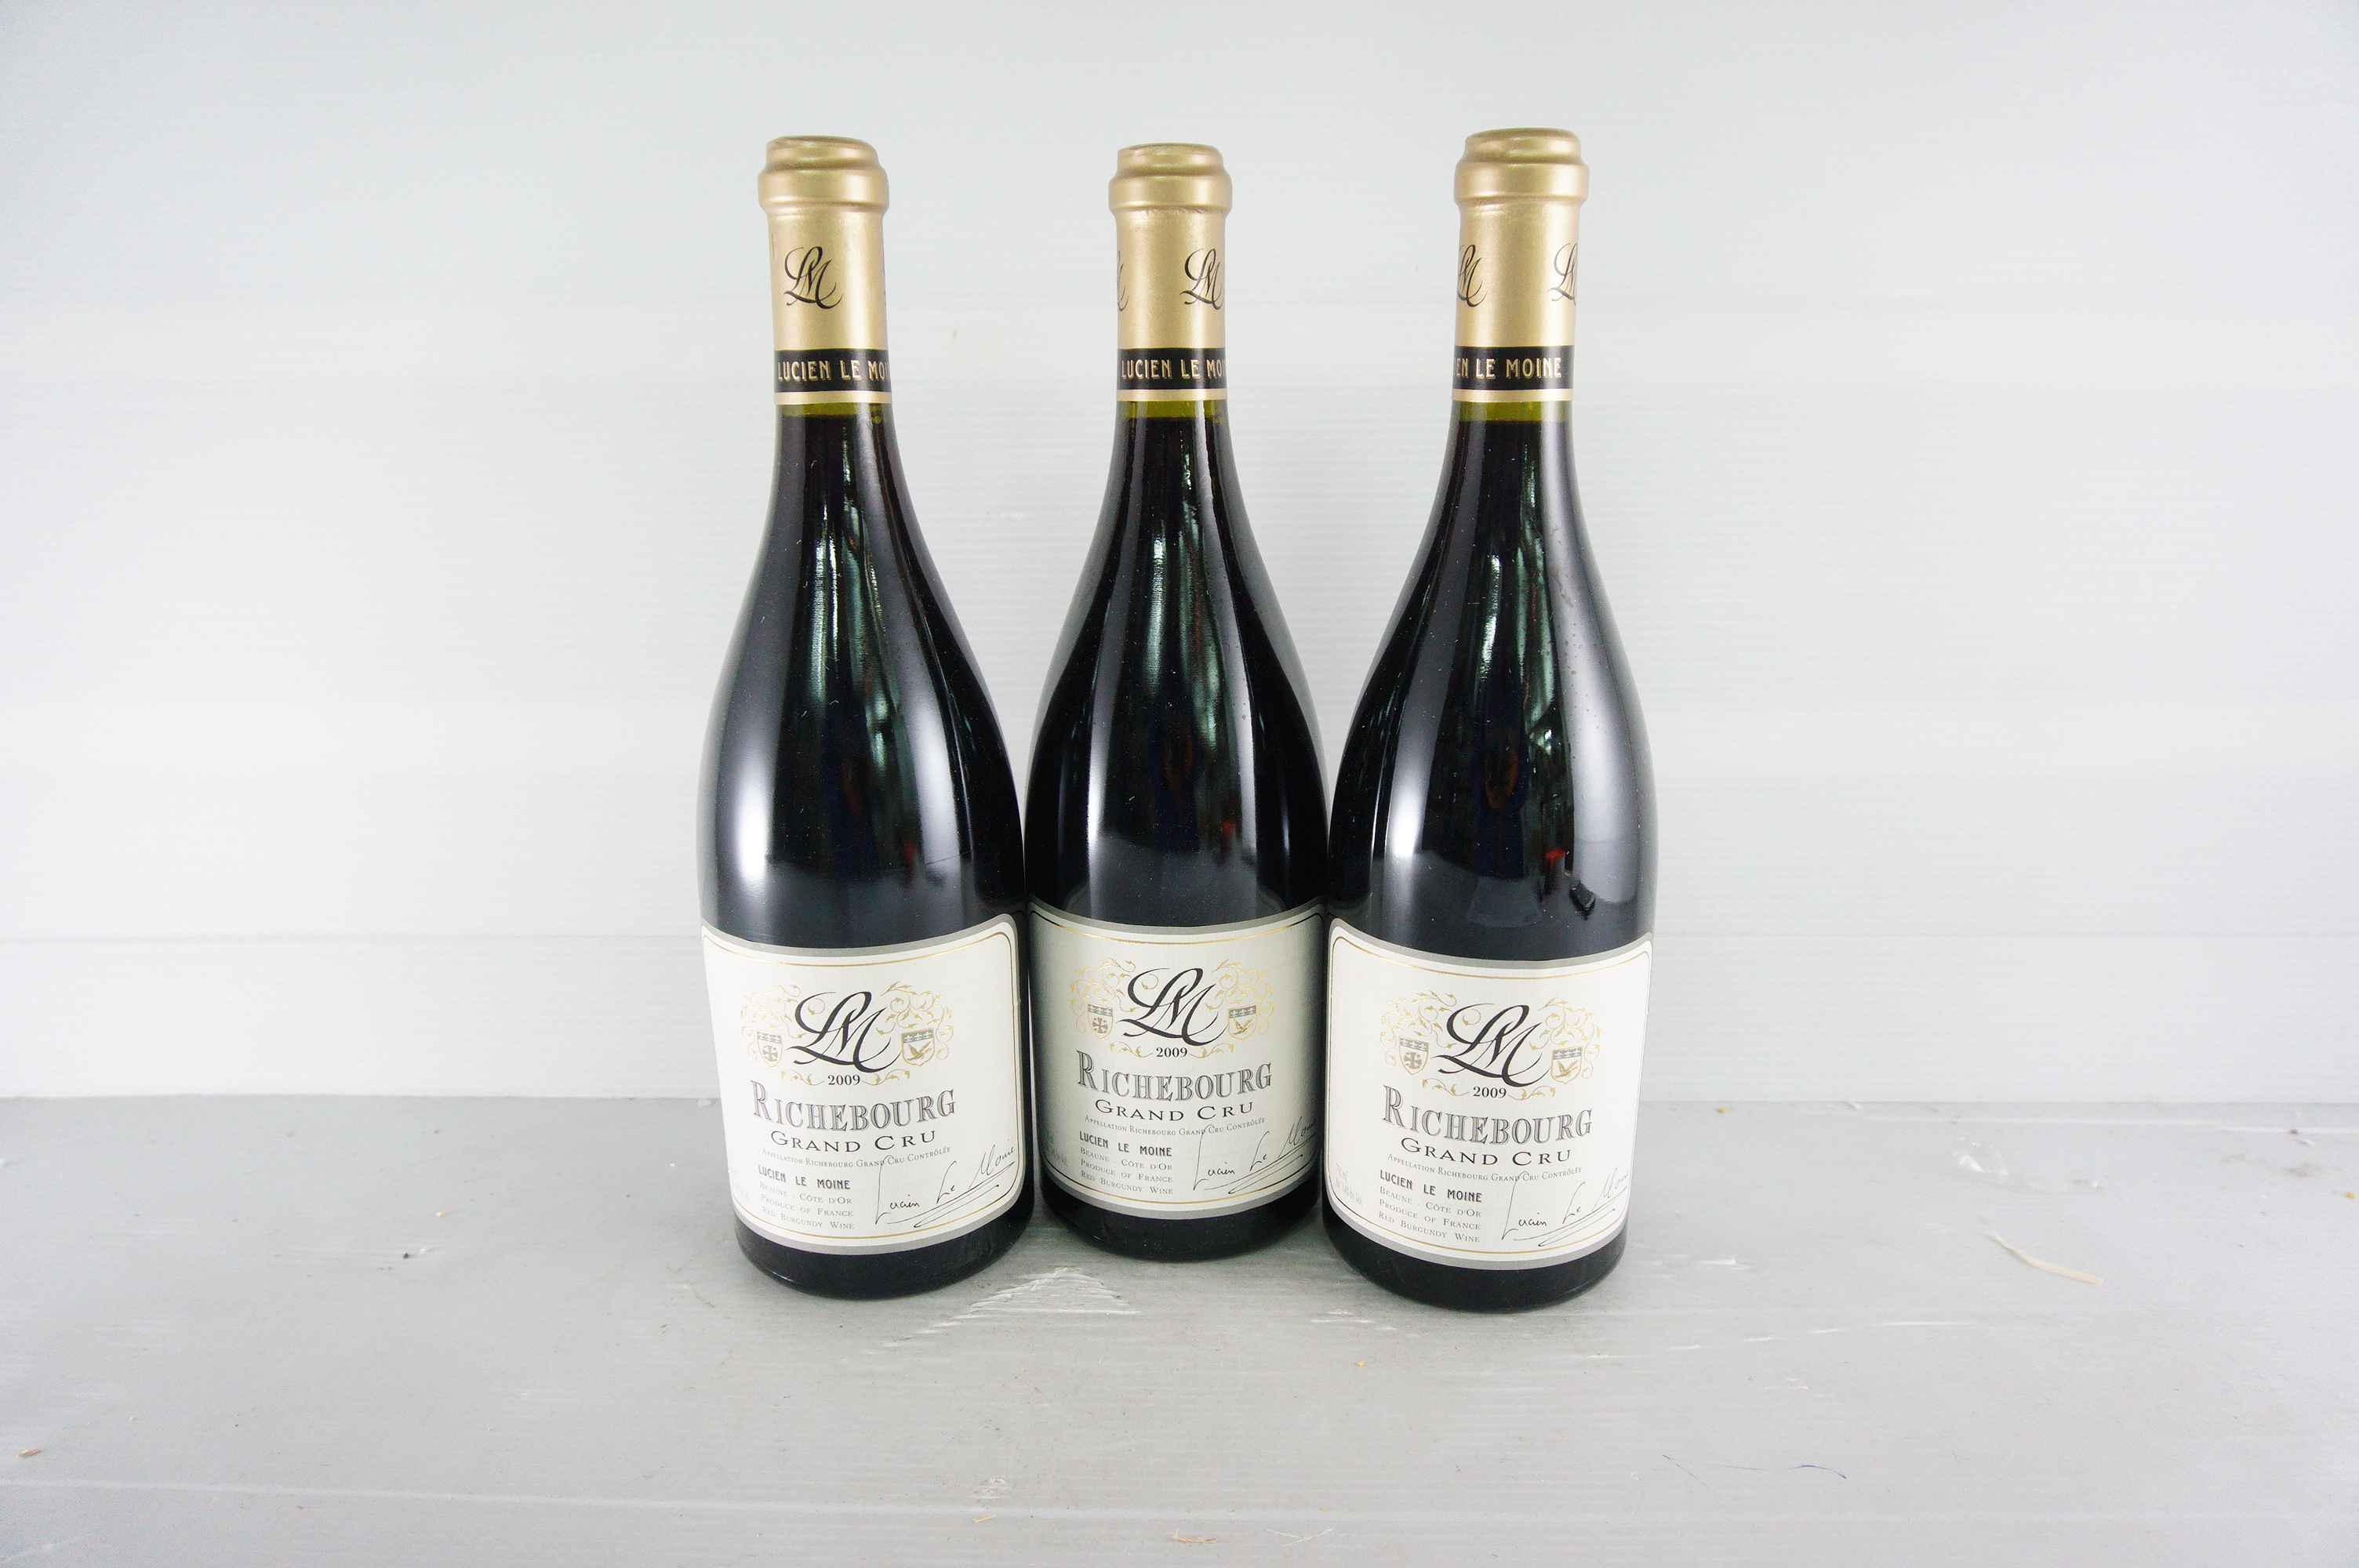 Lucien Le Moine Richebourg Grand Cru 2009